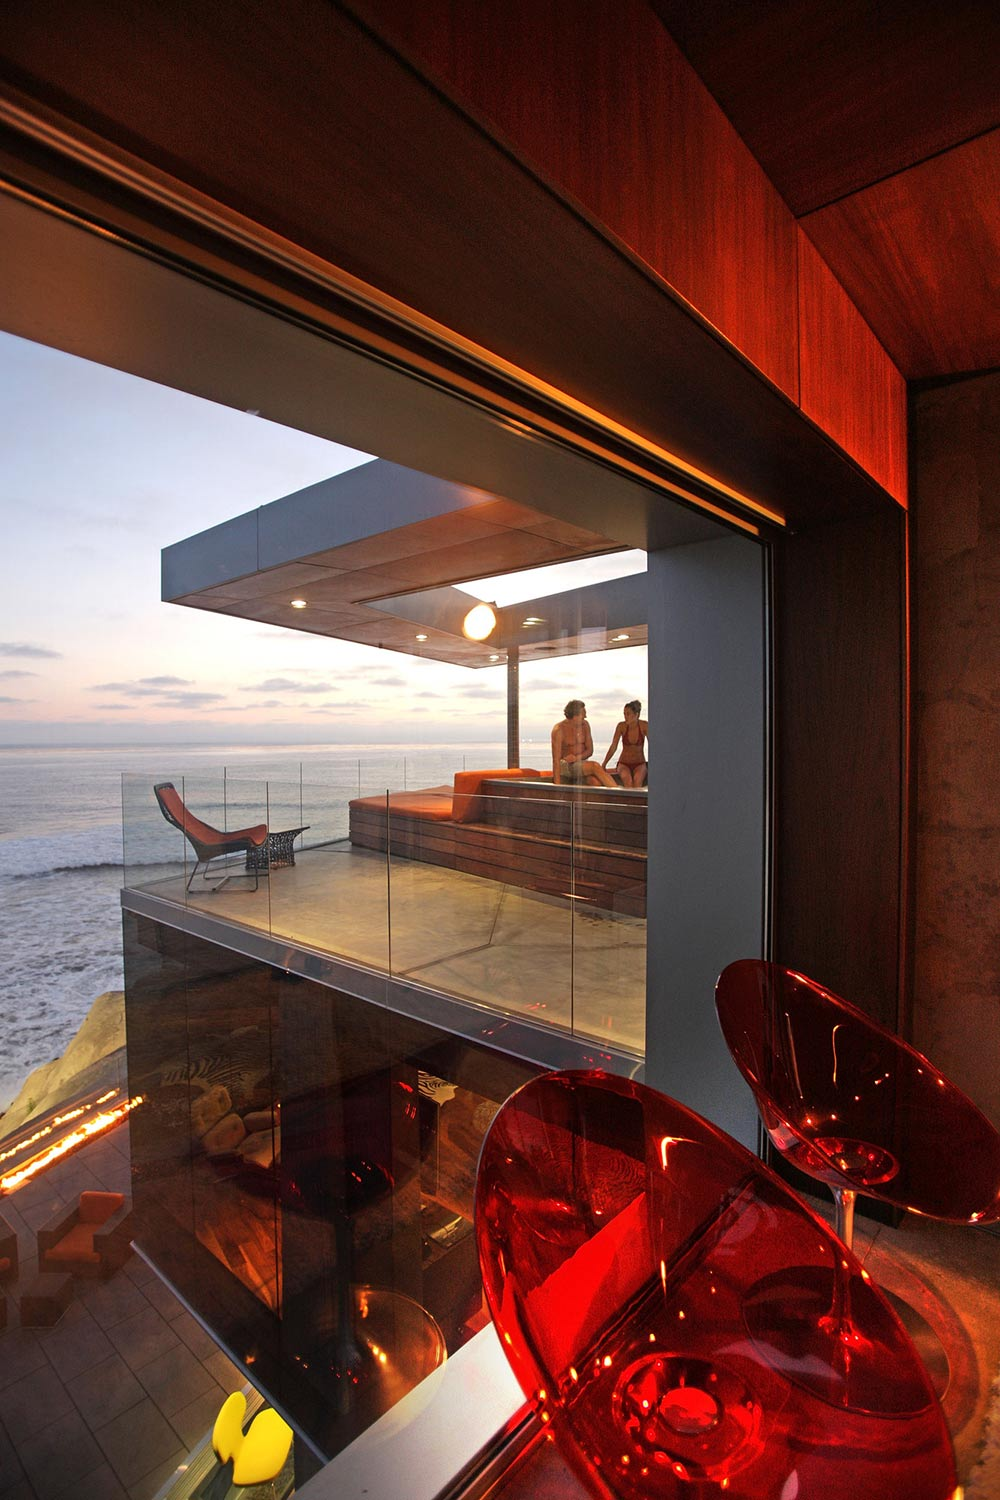 Jacuzzi Red Seats, Exquisite Ocean Front Residence in La Jolla, California